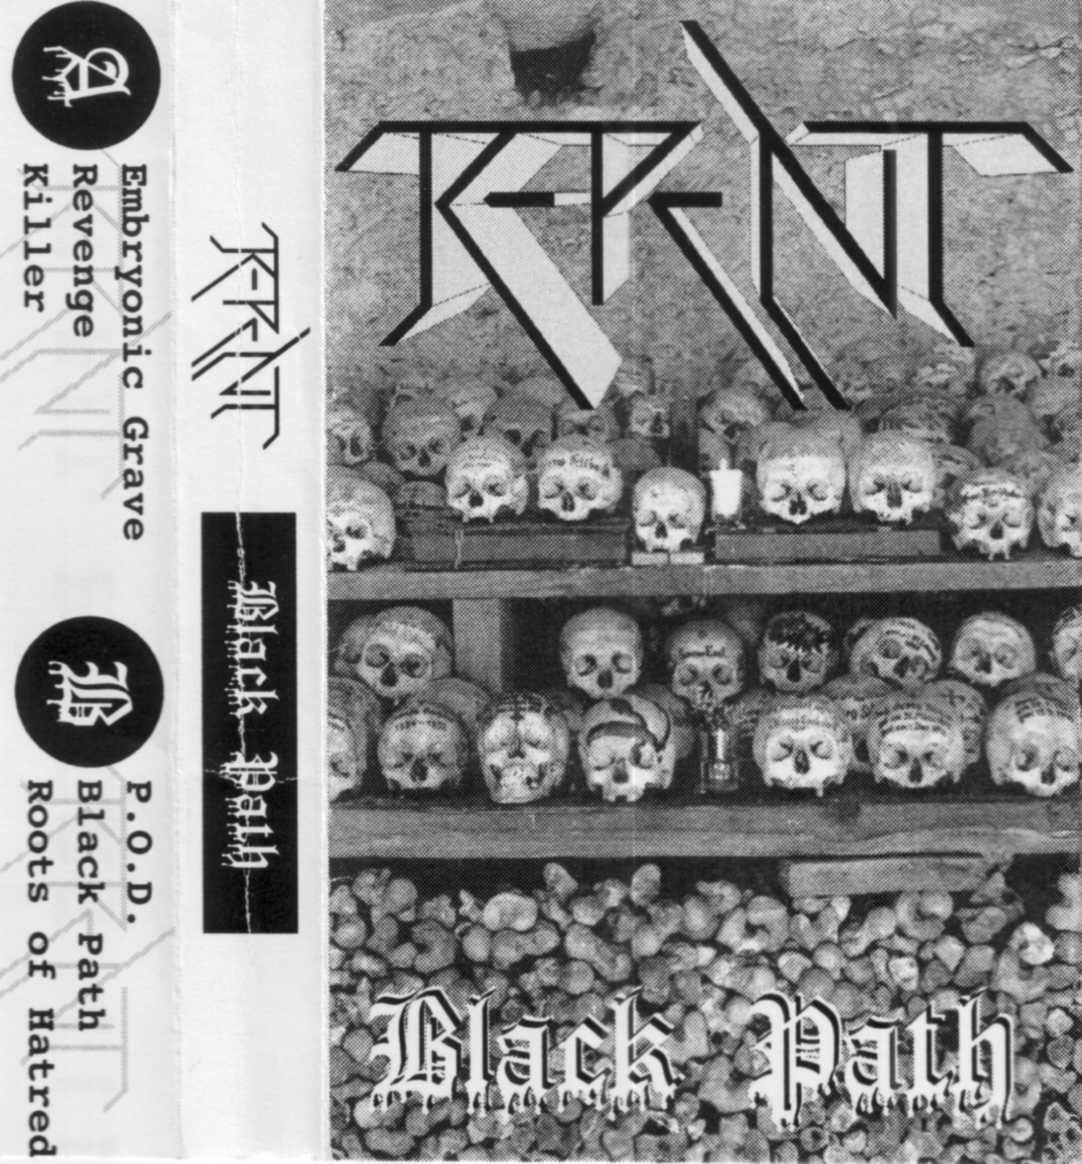 black-path-demo-cover.jpg